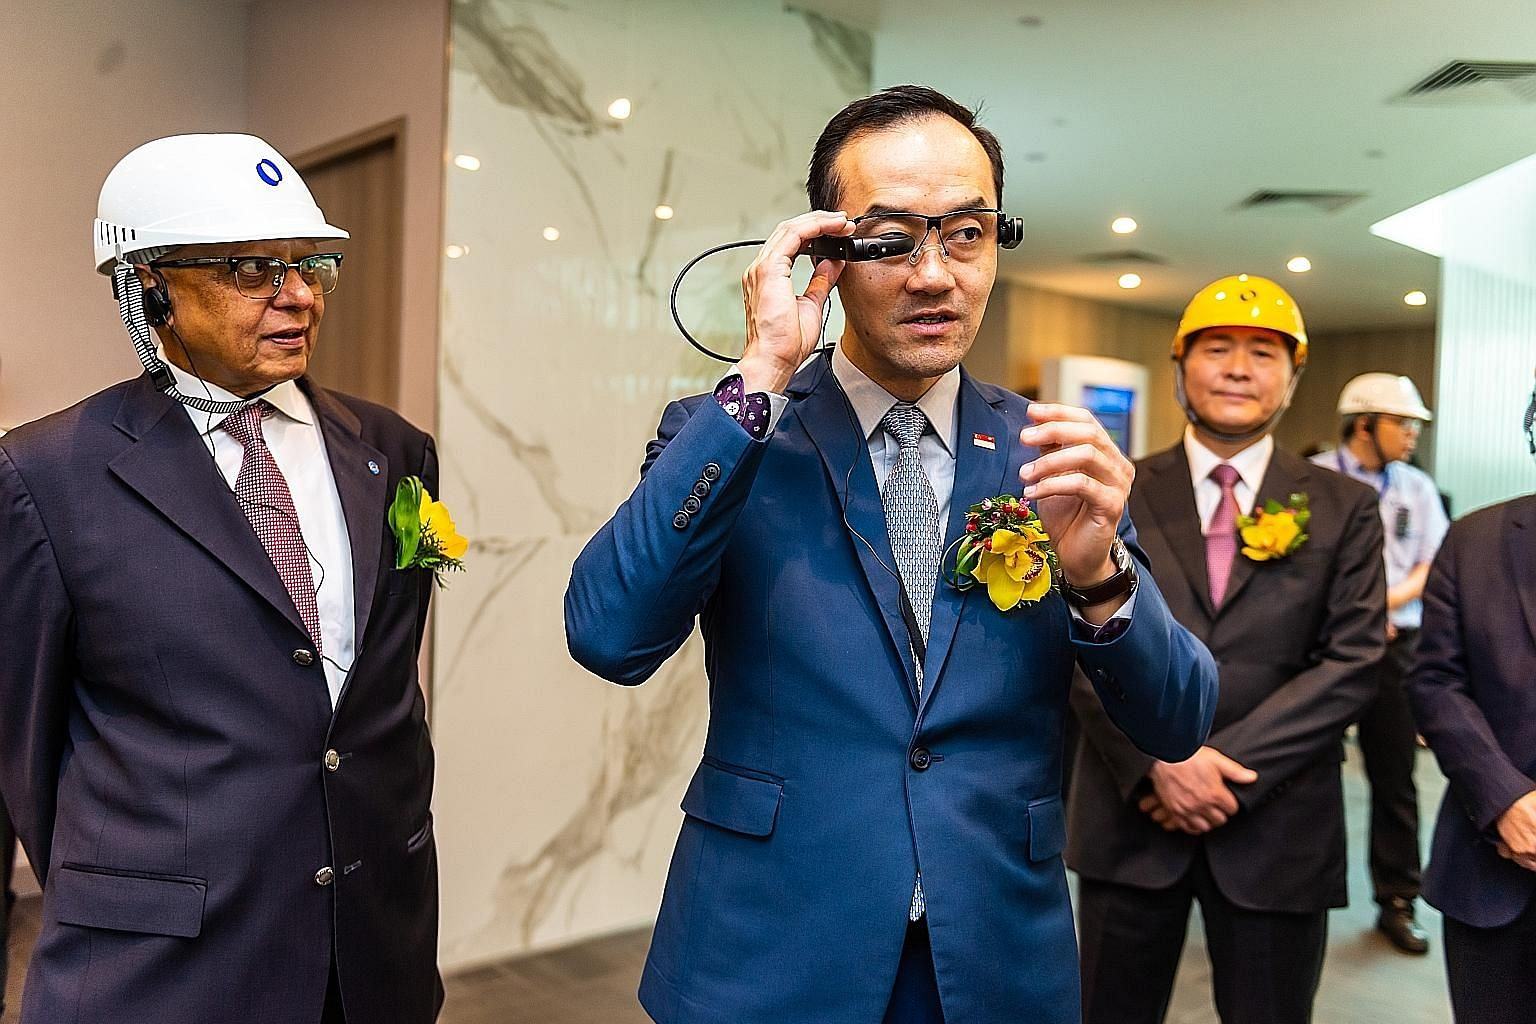 Senior Minister of State for Trade and Industry Koh Poh Koon trying out Makino Asia's Smart Glasses, which provide real-time information to engineers on the ground who are trying to fix technical faults in machines. On his left is Mr K. S. Sankaran,